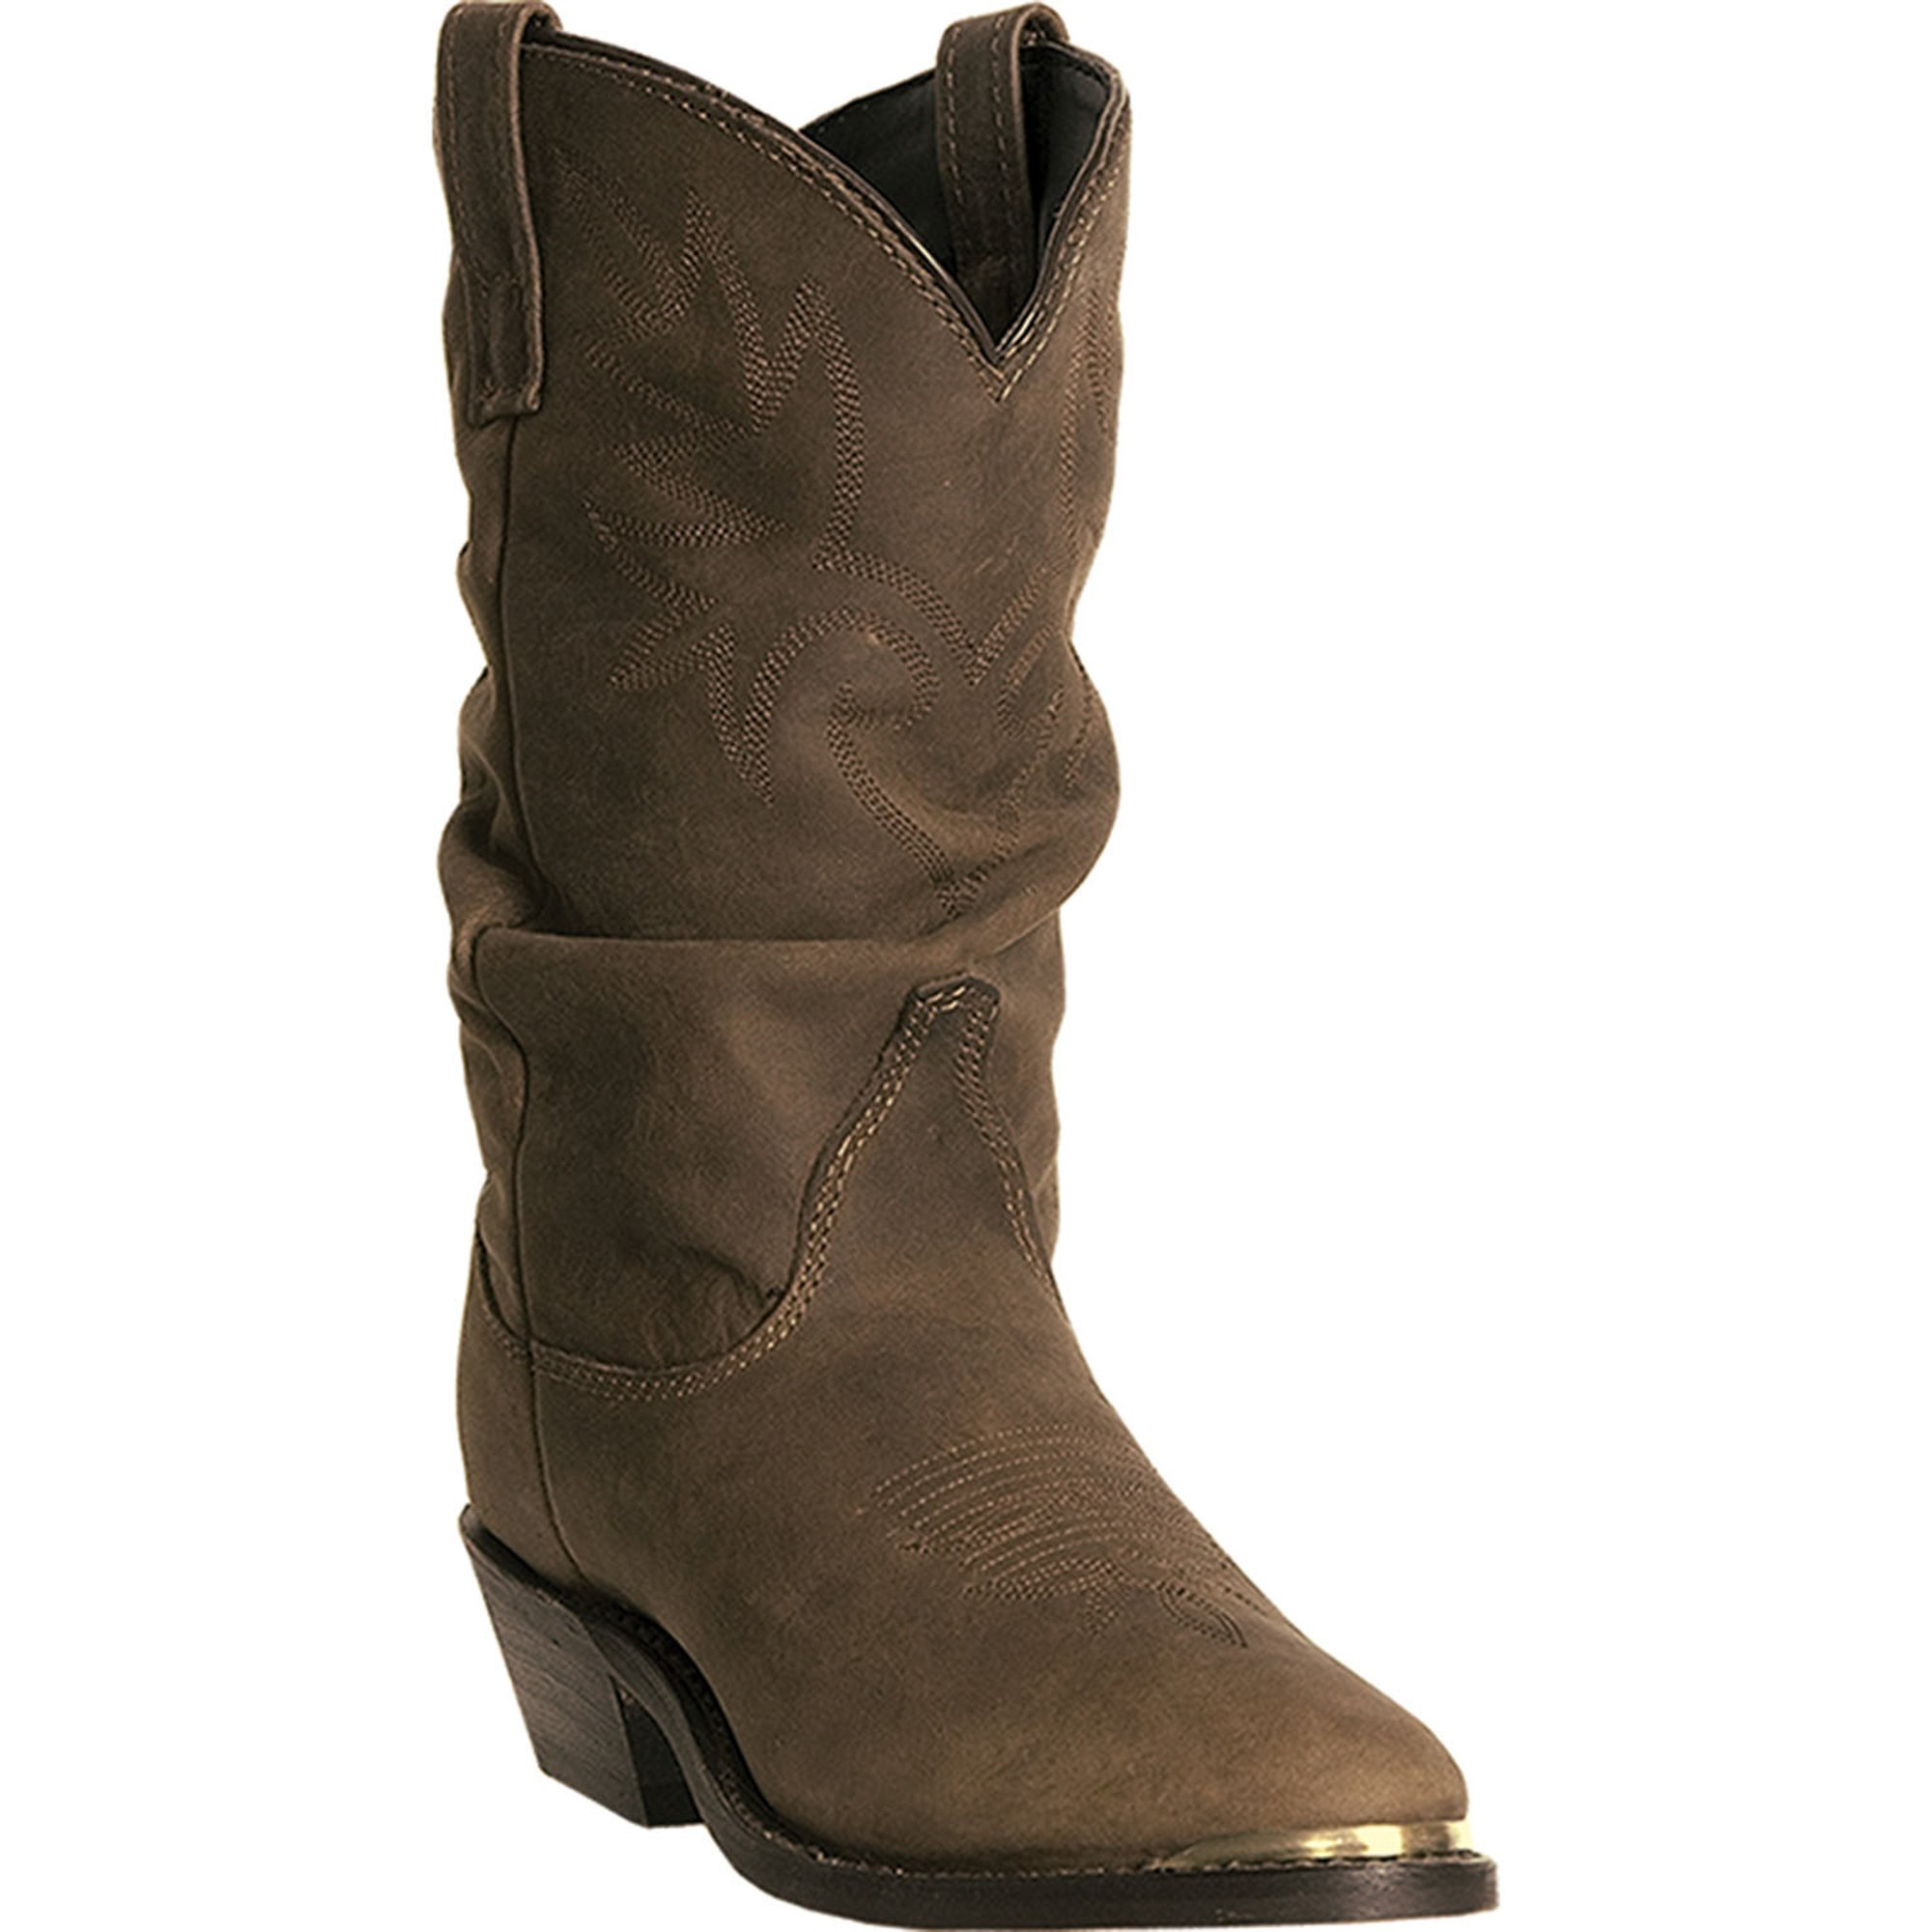 Dingo Women's Marlee Golden Condor Boot 7 D - Wide by Dingo (Image #1)